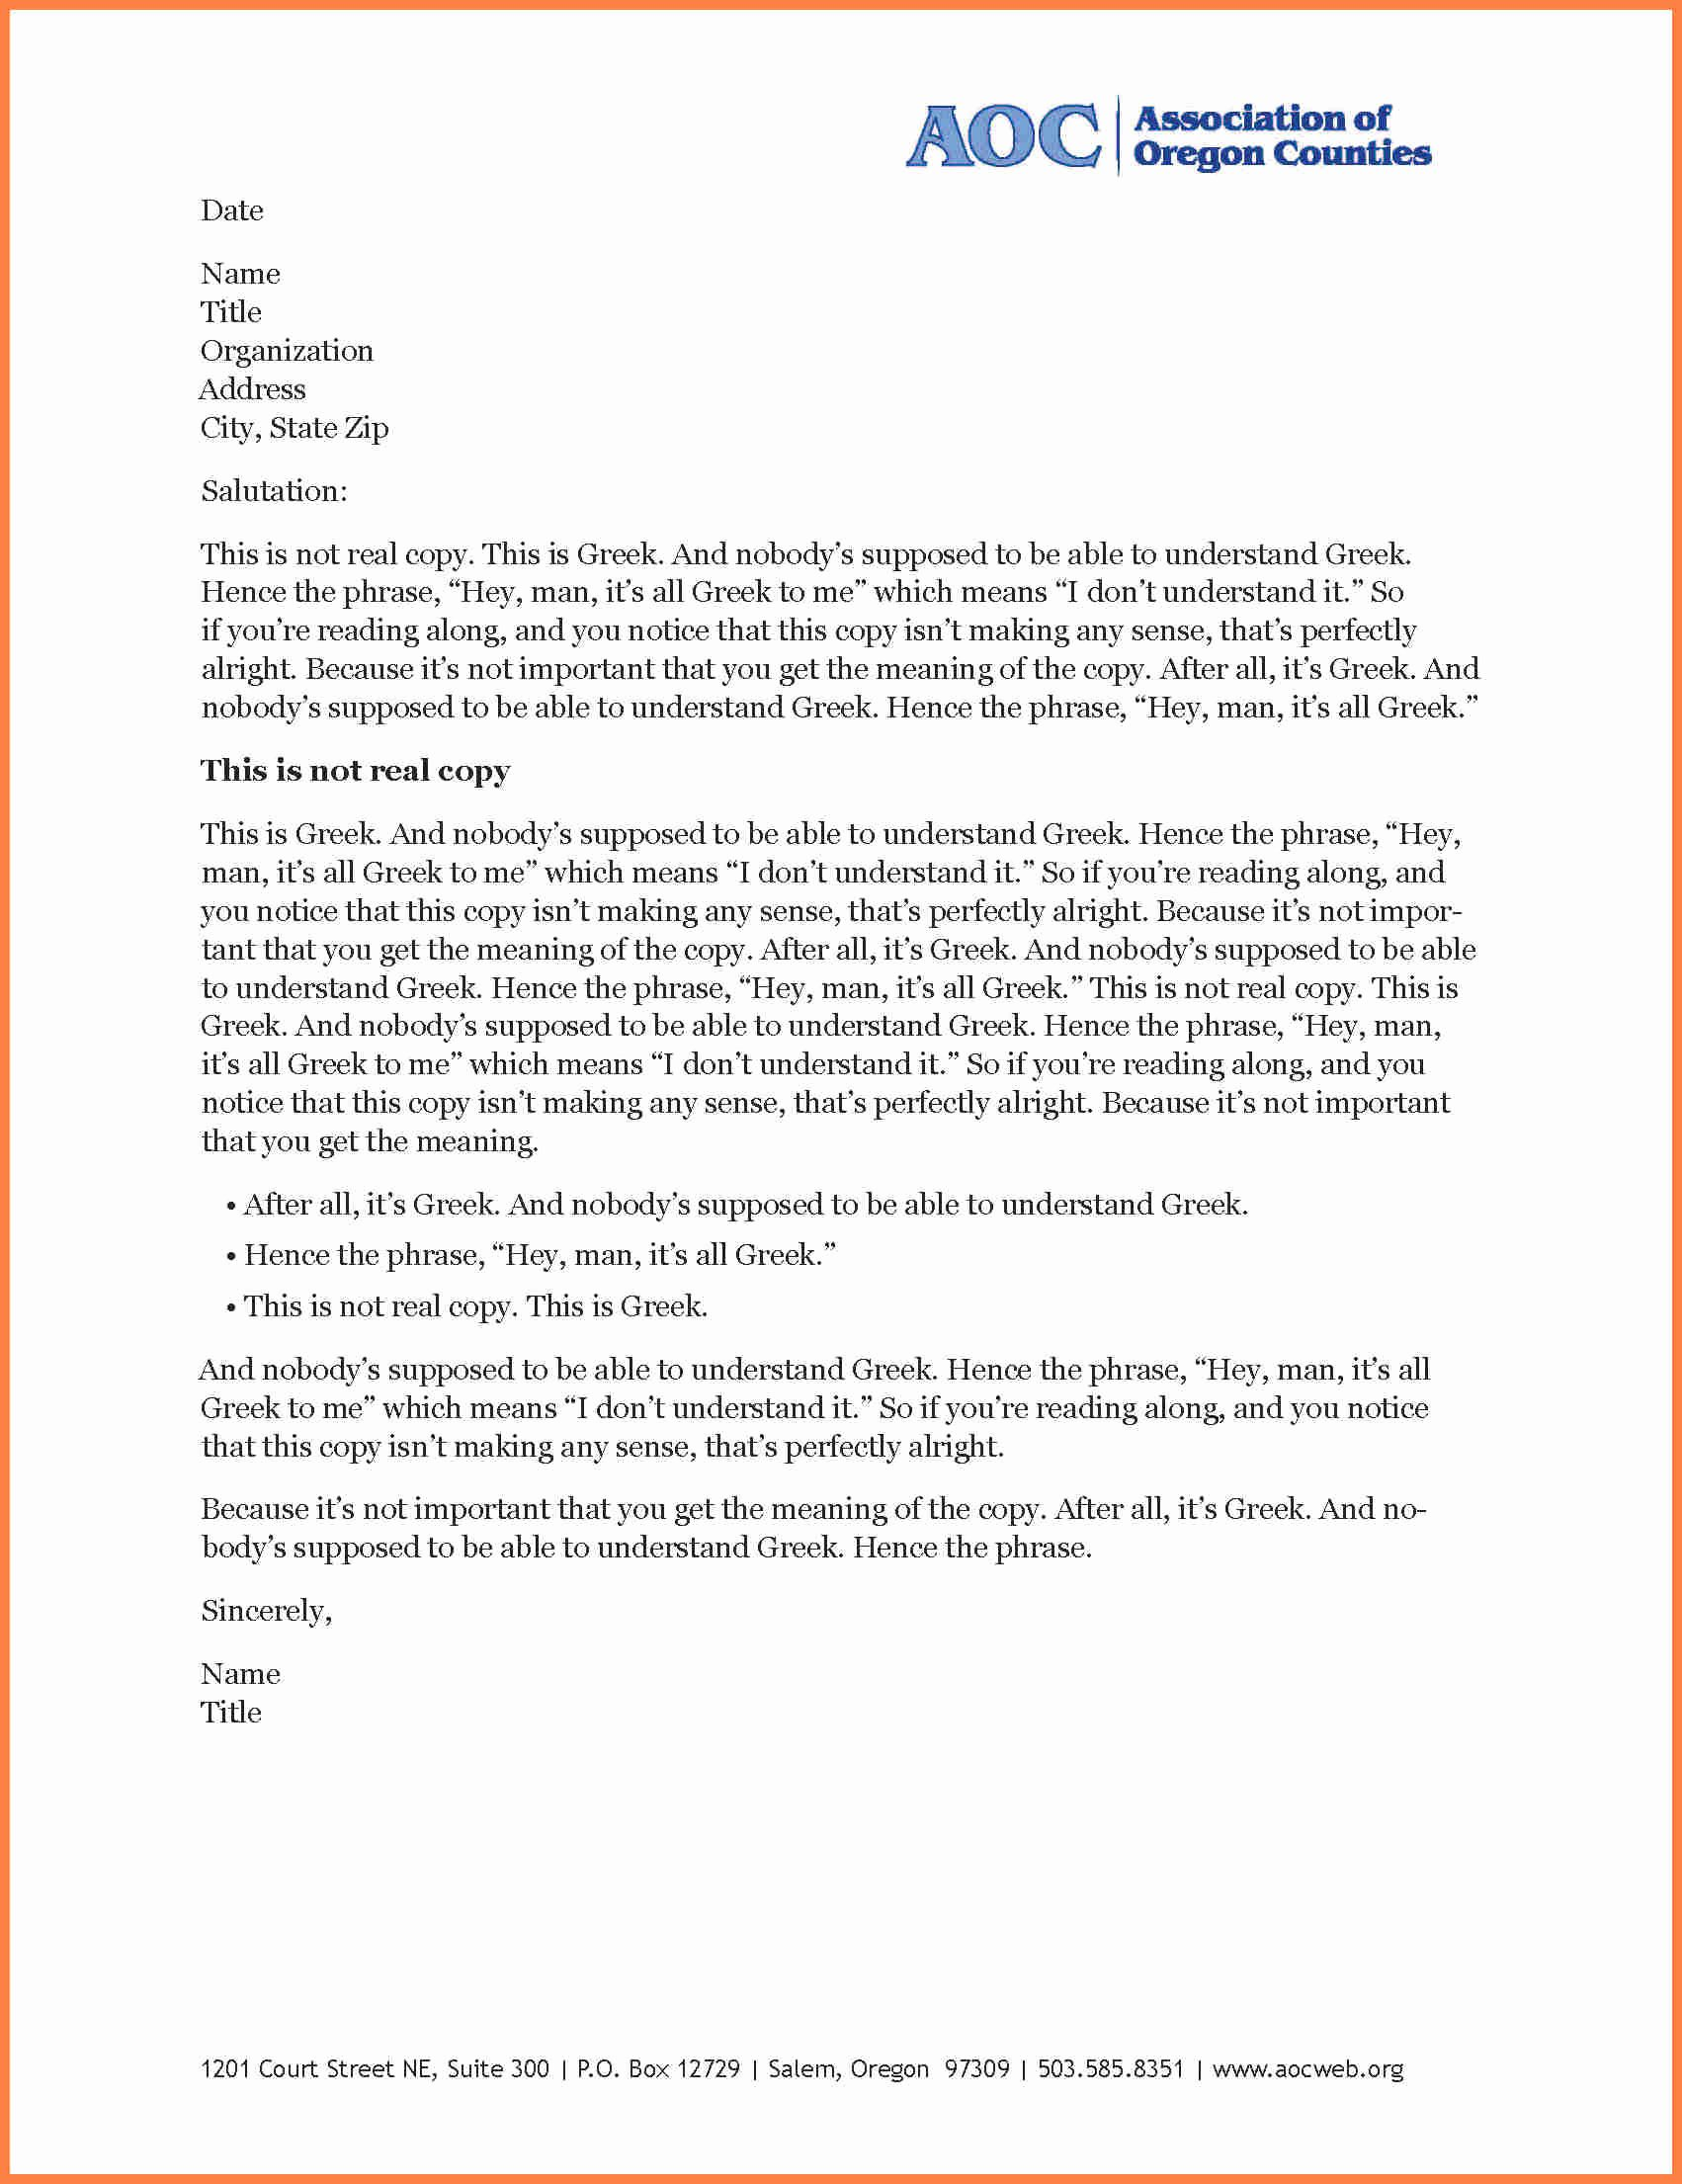 Create Letterhead Template In Word Lovely 10 Create A Letterhead Template In Word